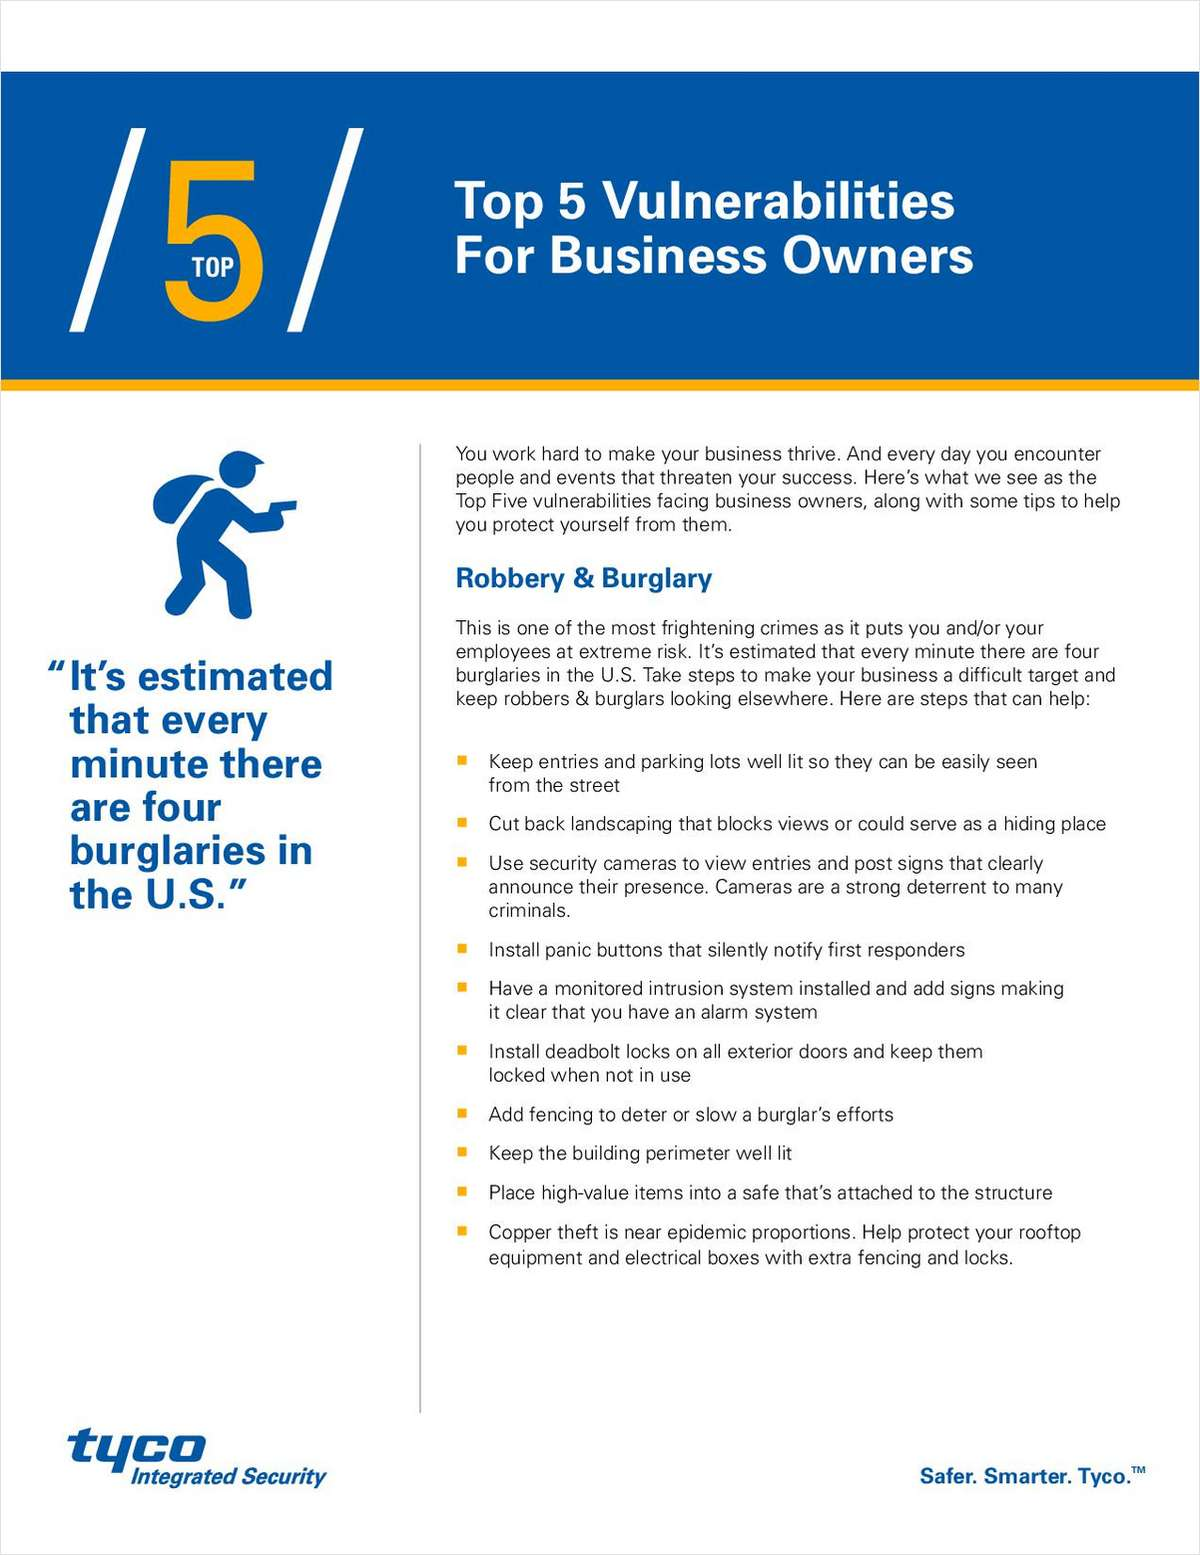 How to Overcome the Top 5 Business Vulnerabilities